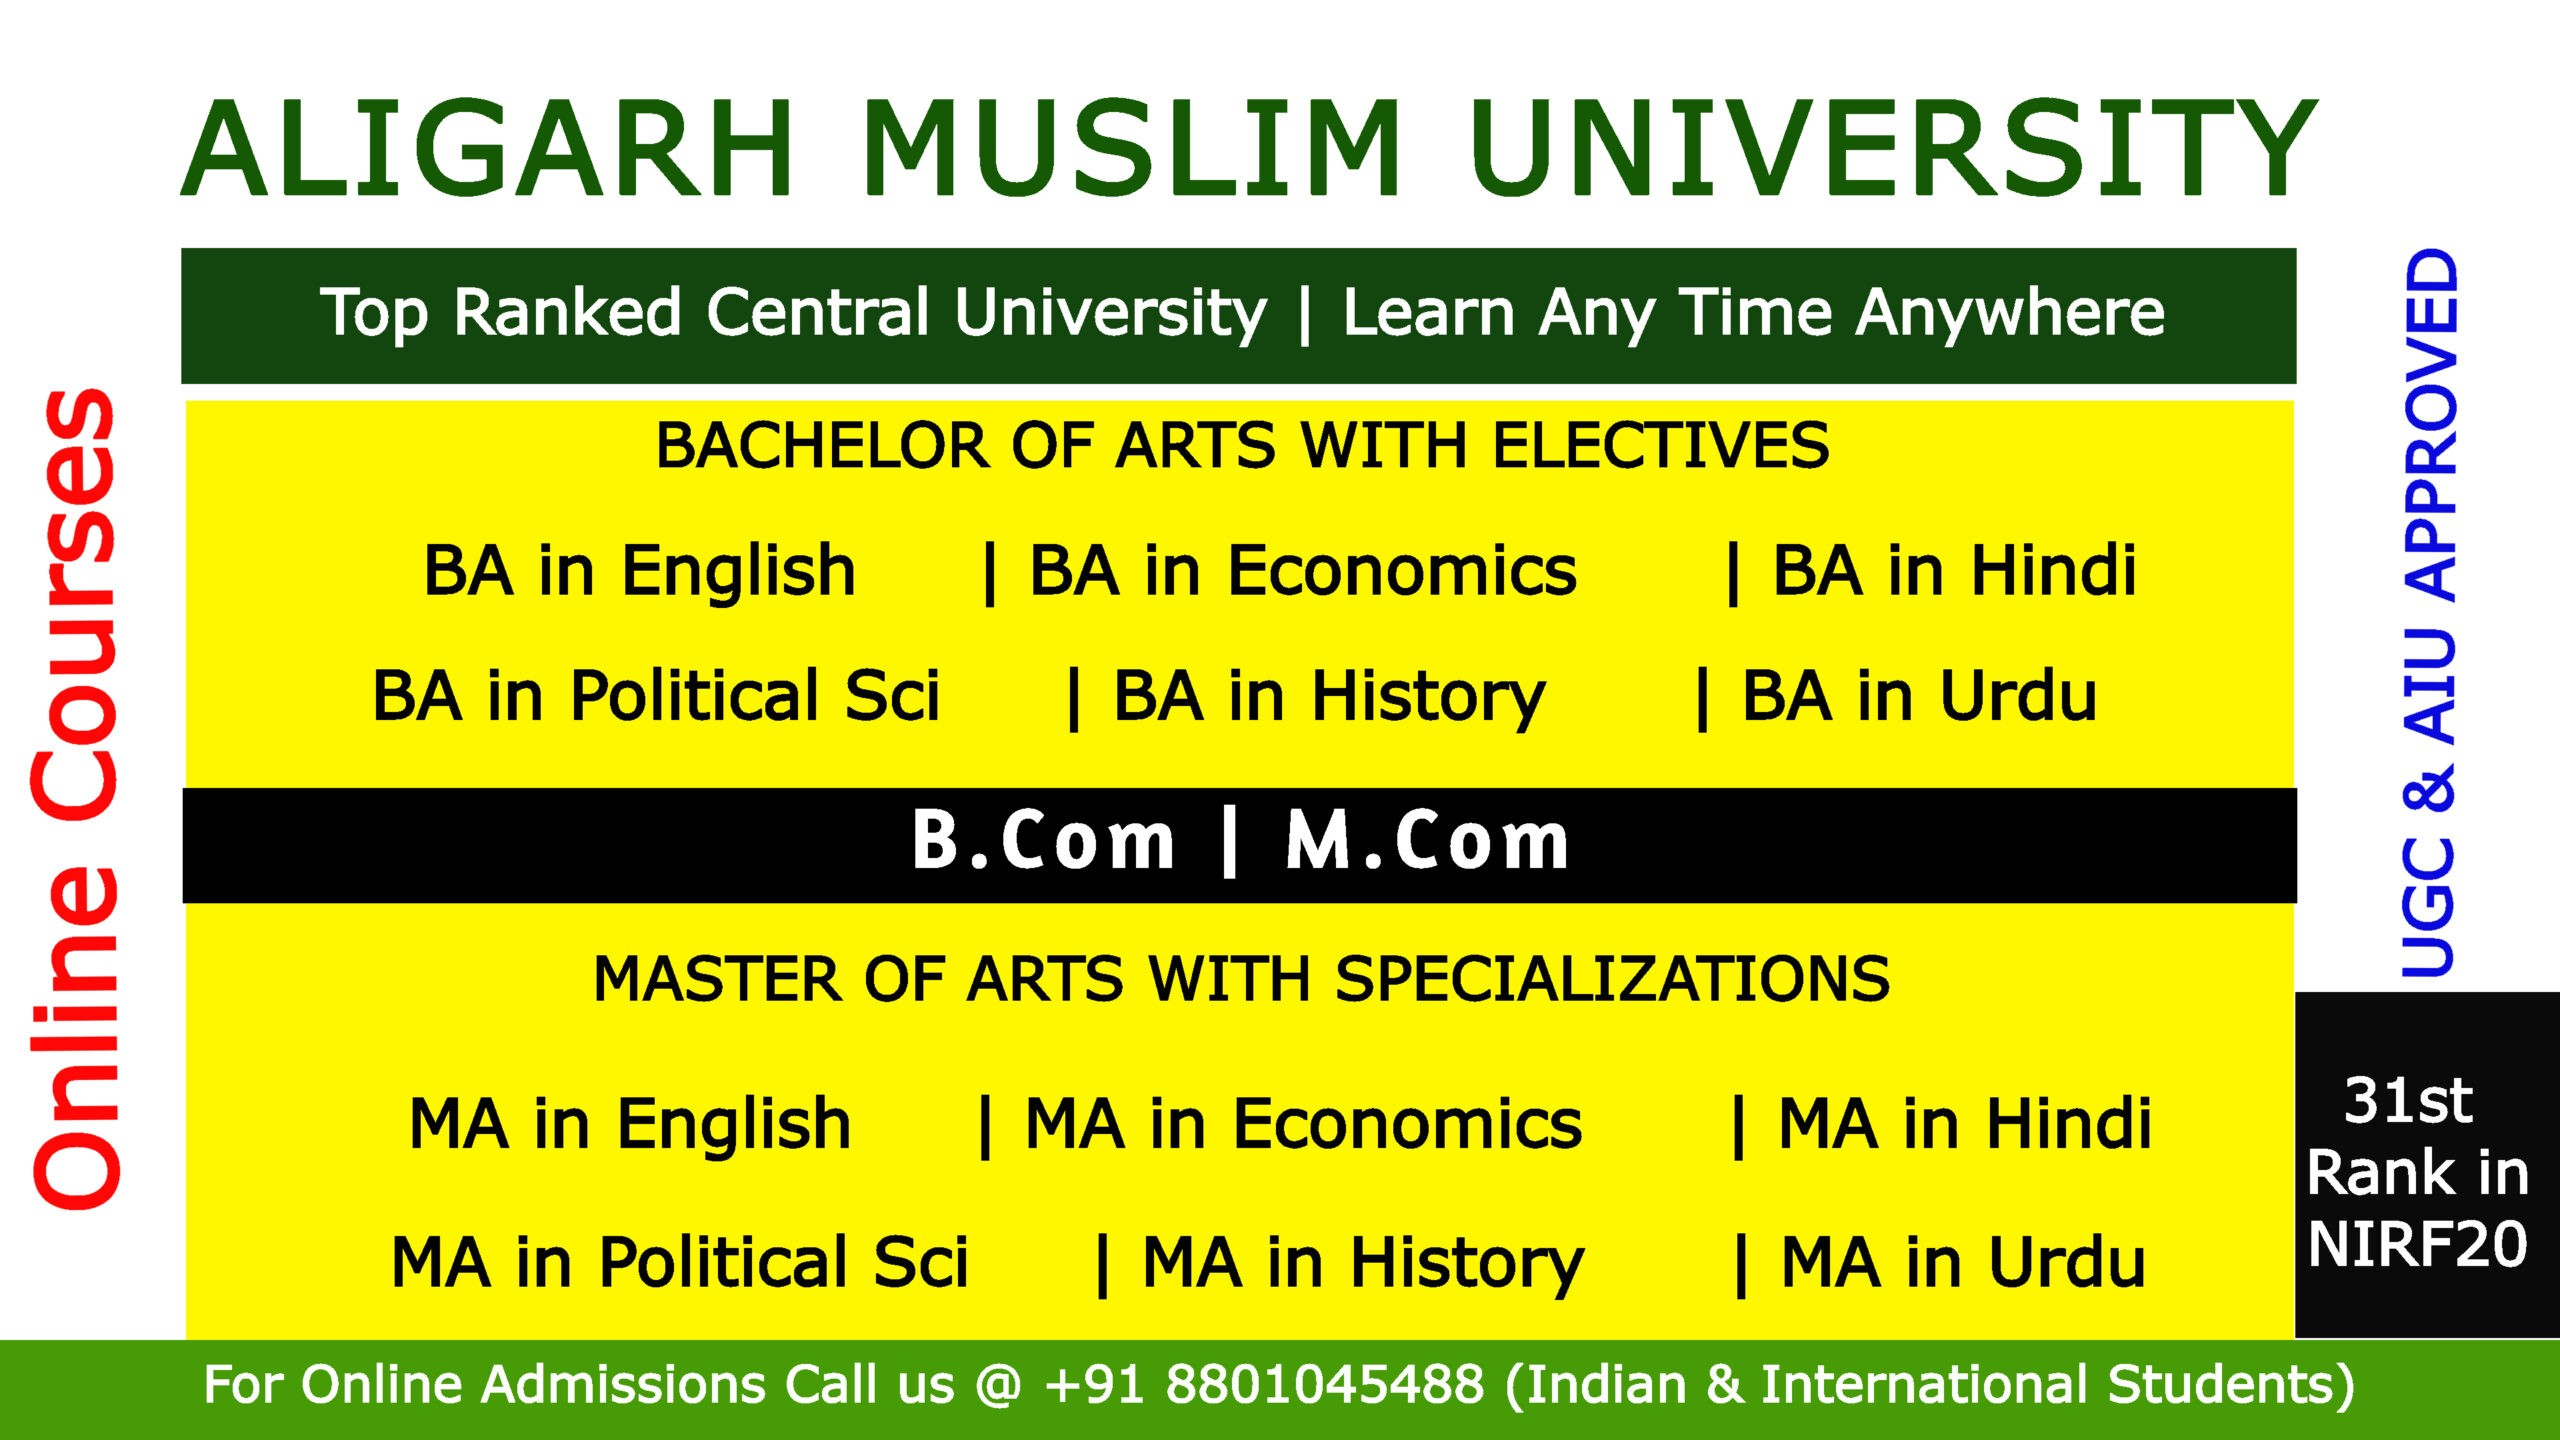 How to Apply Aligarh Muslim University Online Courses |+91 8801045488